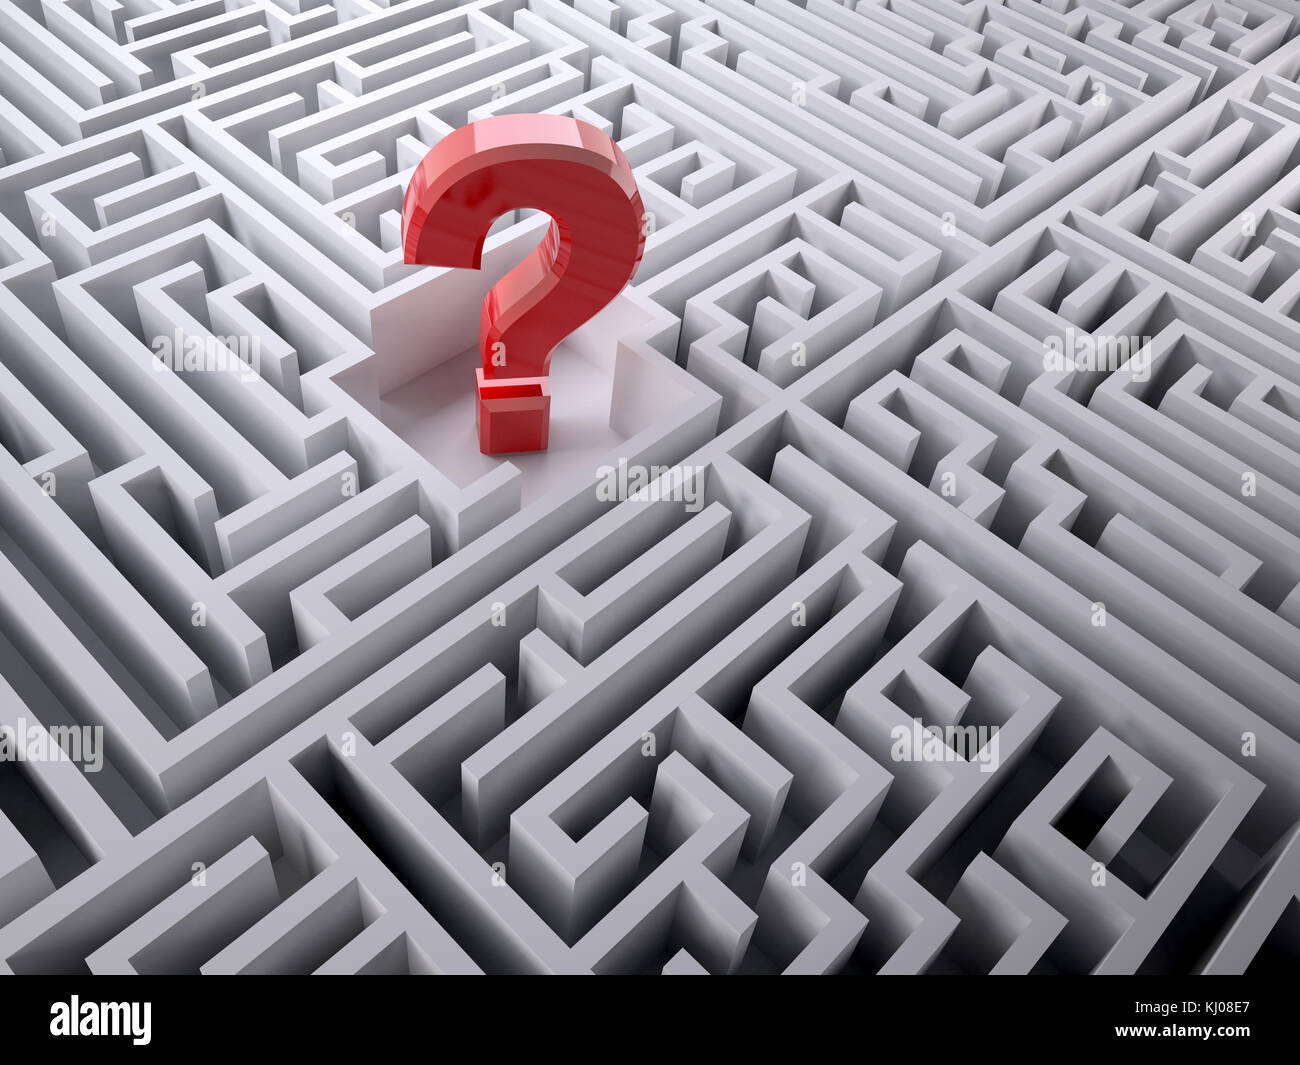 Red question mark inside the labyrinth maze, 3d illustration - Stock Image